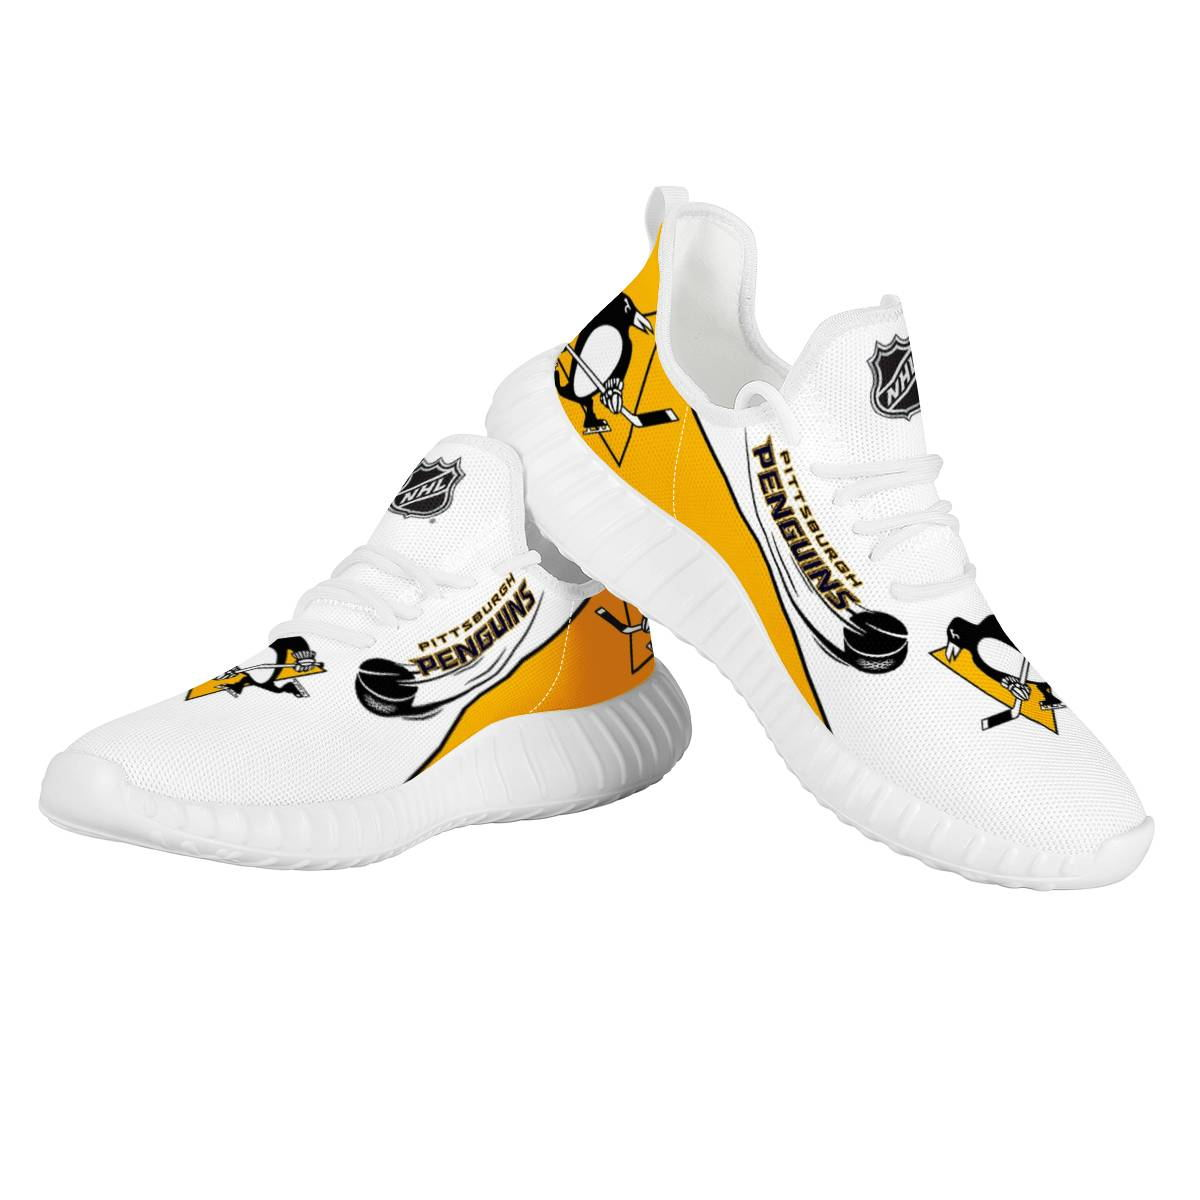 Women's NHL Pittsburgh Penguins Mesh Knit Sneakers/Shoes 002